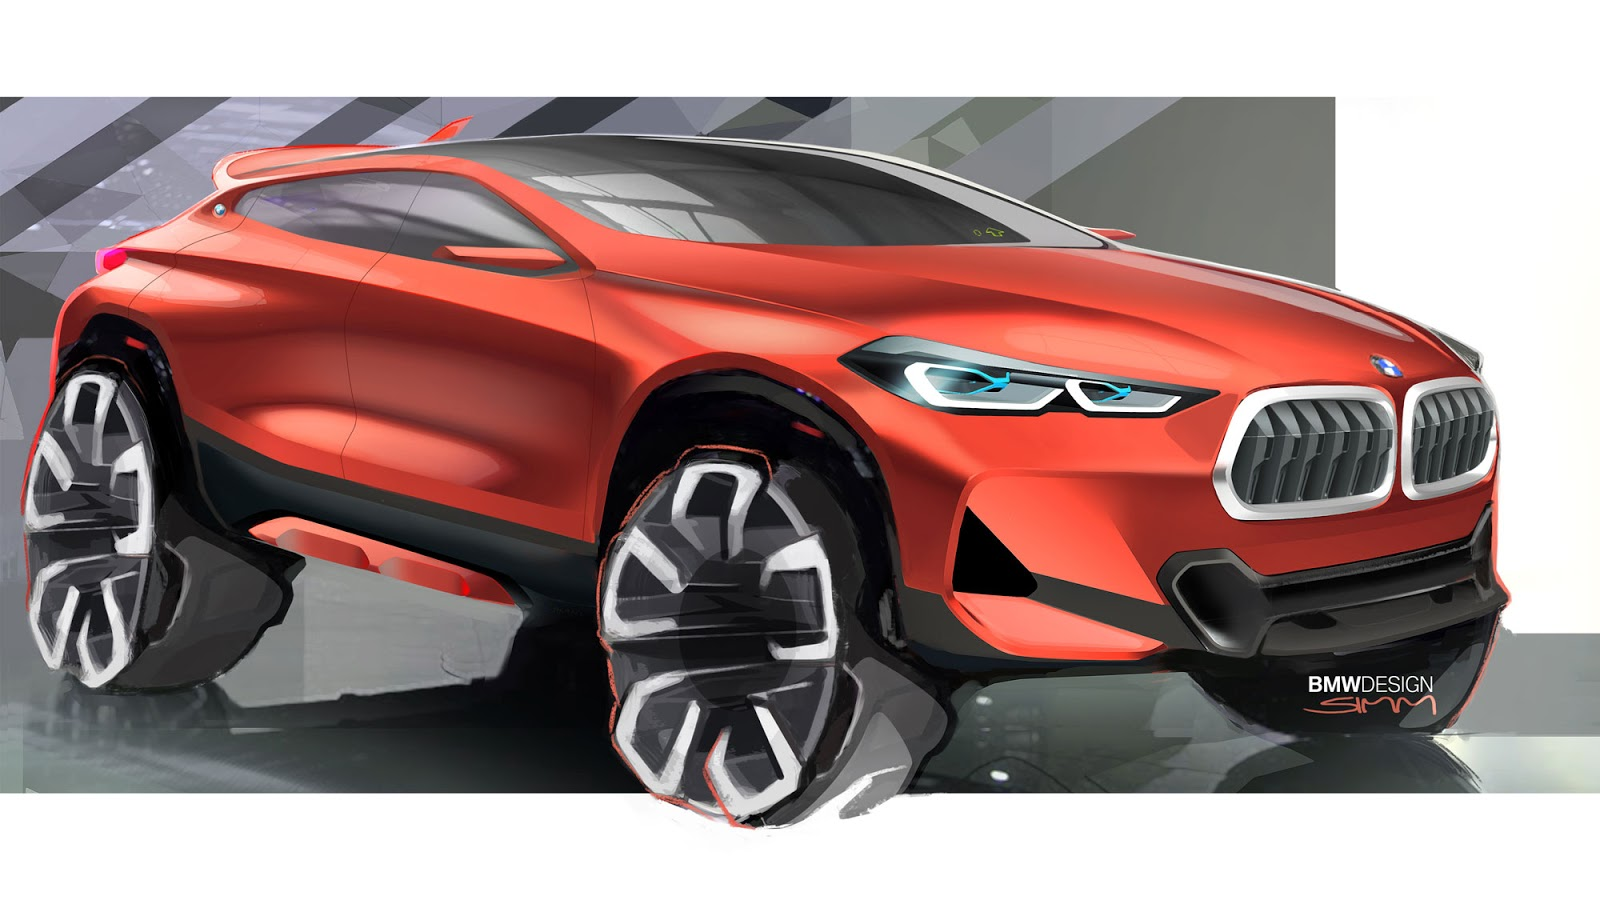 BMW X2 sketch by Sebastian Simm - front quarter view in red